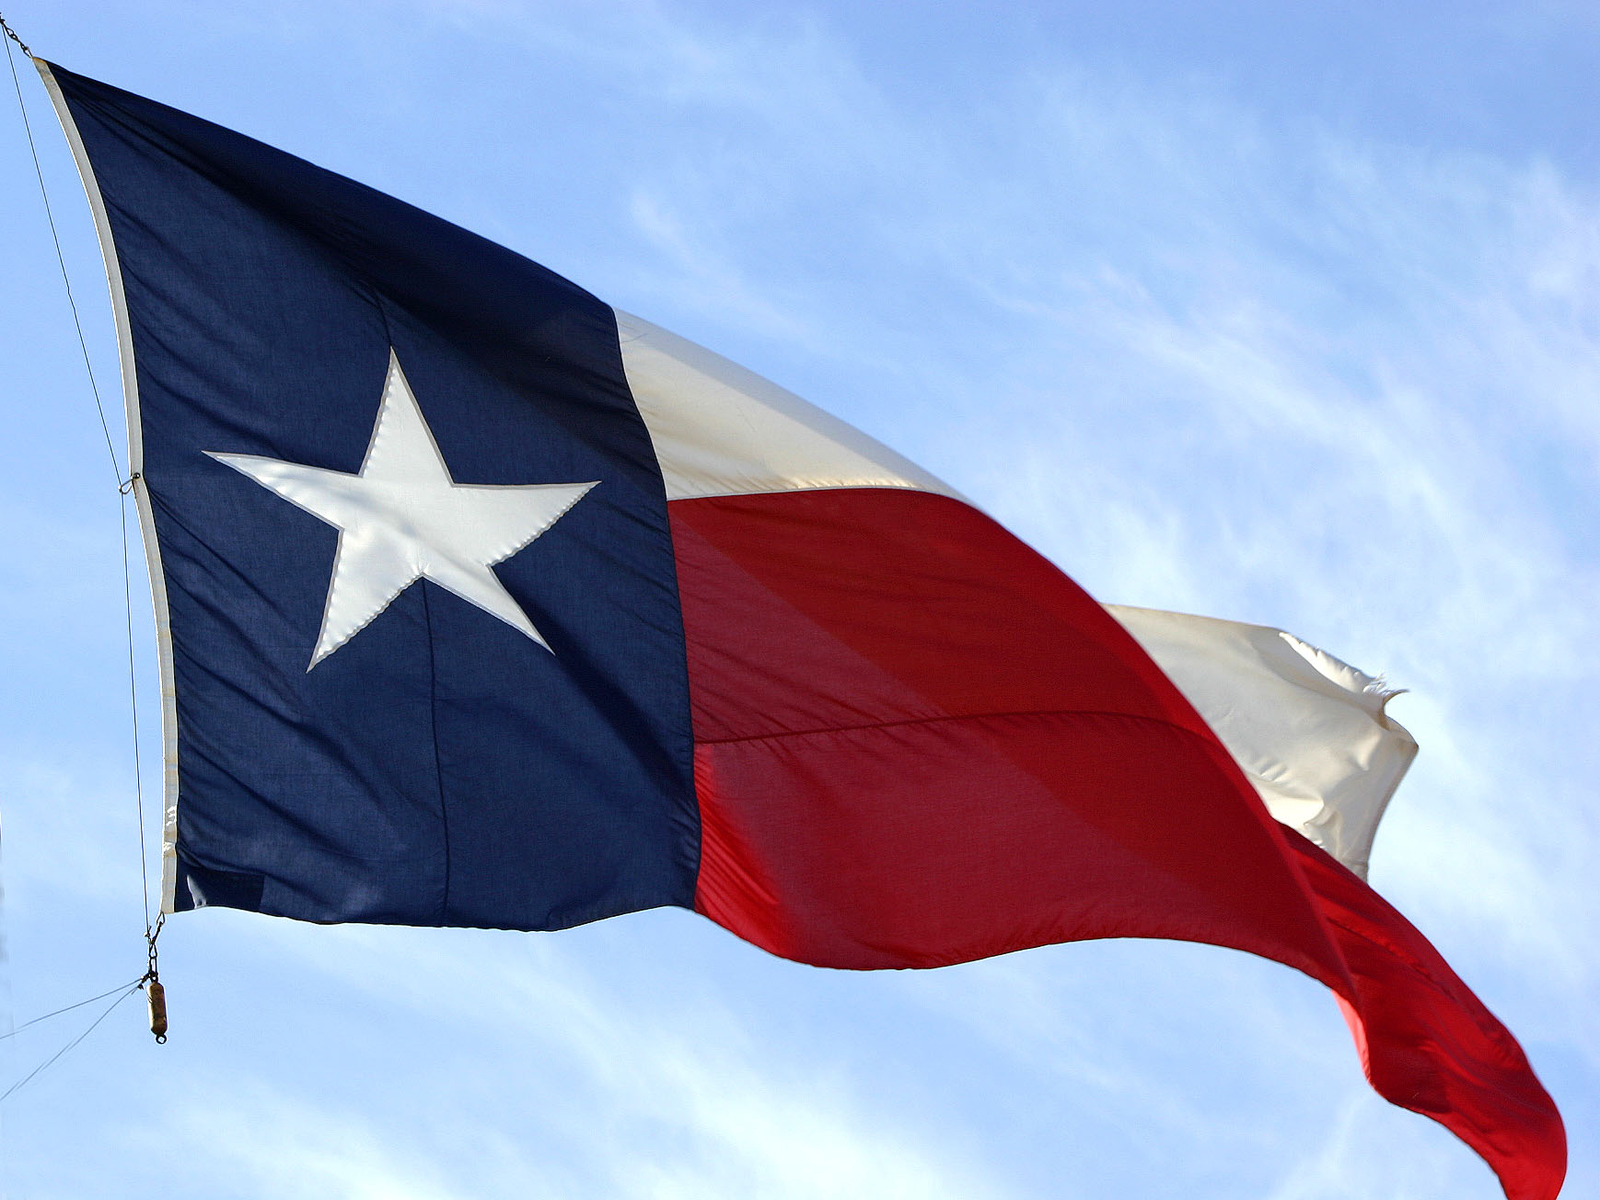 Dominican life on lotus lane some texas history from a catholic point of view - Texas flag wallpaper ...